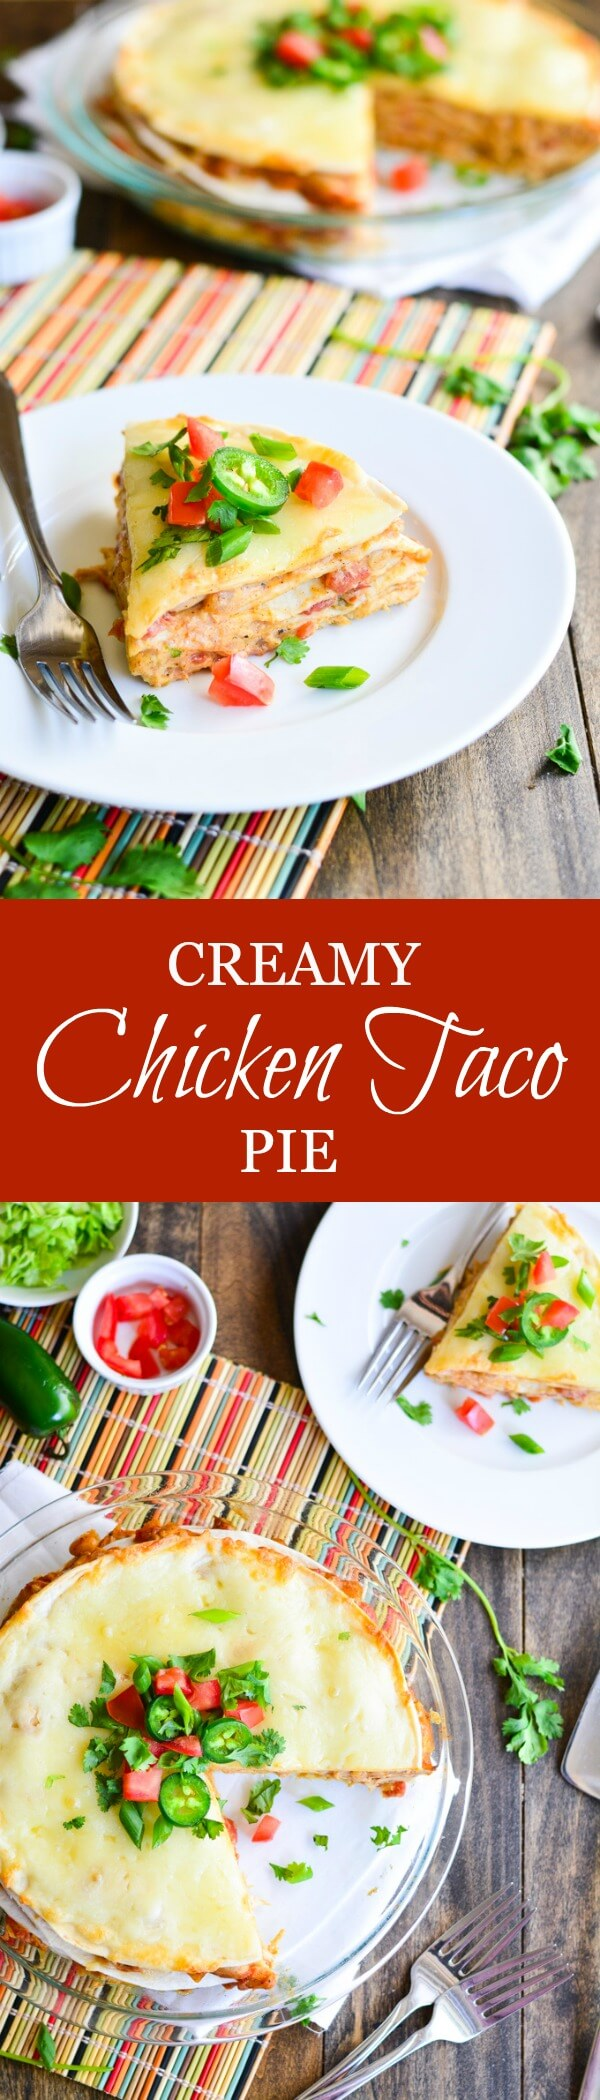 This CREAMY CHICKEN TACO PIE is layers up on layers of tortillas, chicken, beans, and cheese in a flavorful creamy sauce.